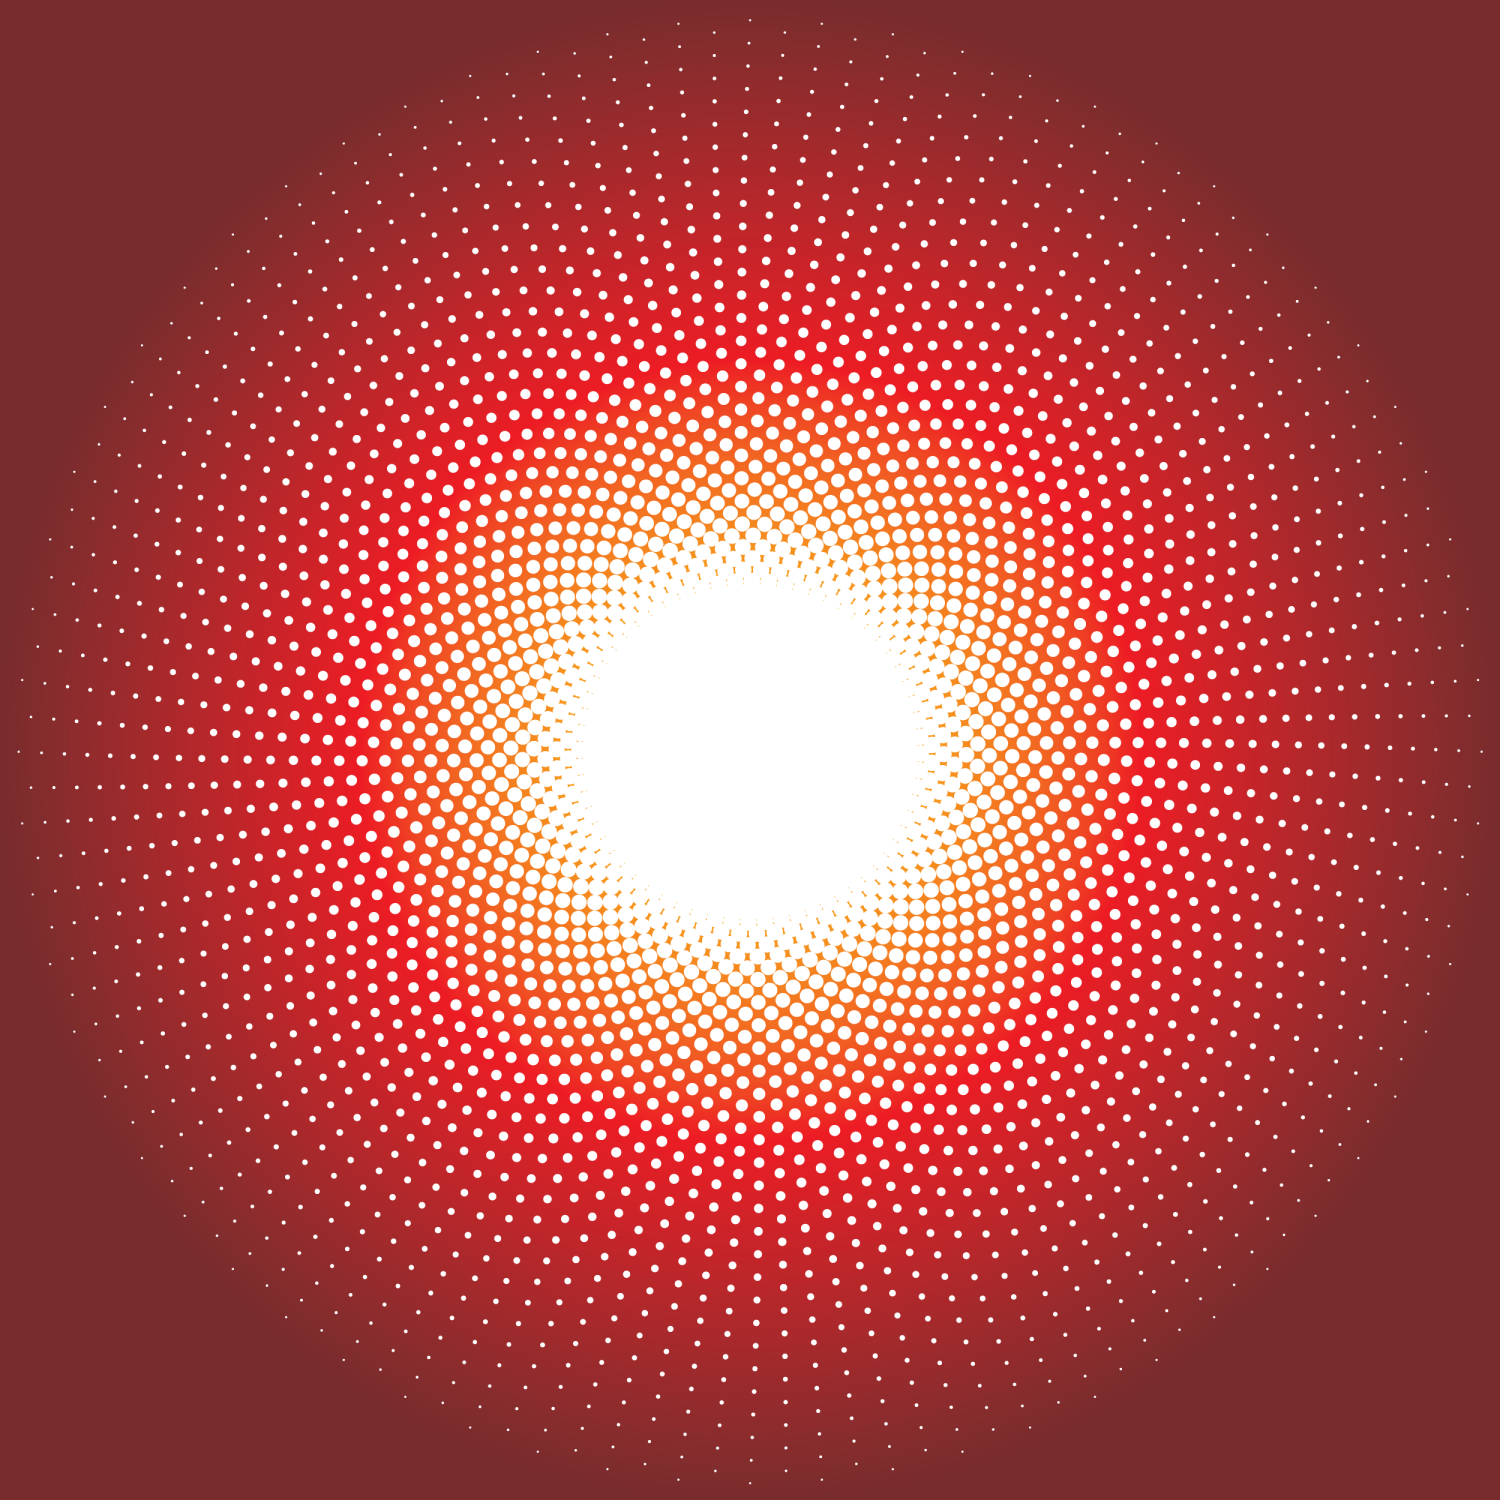 Halftone Dots Vector Image.